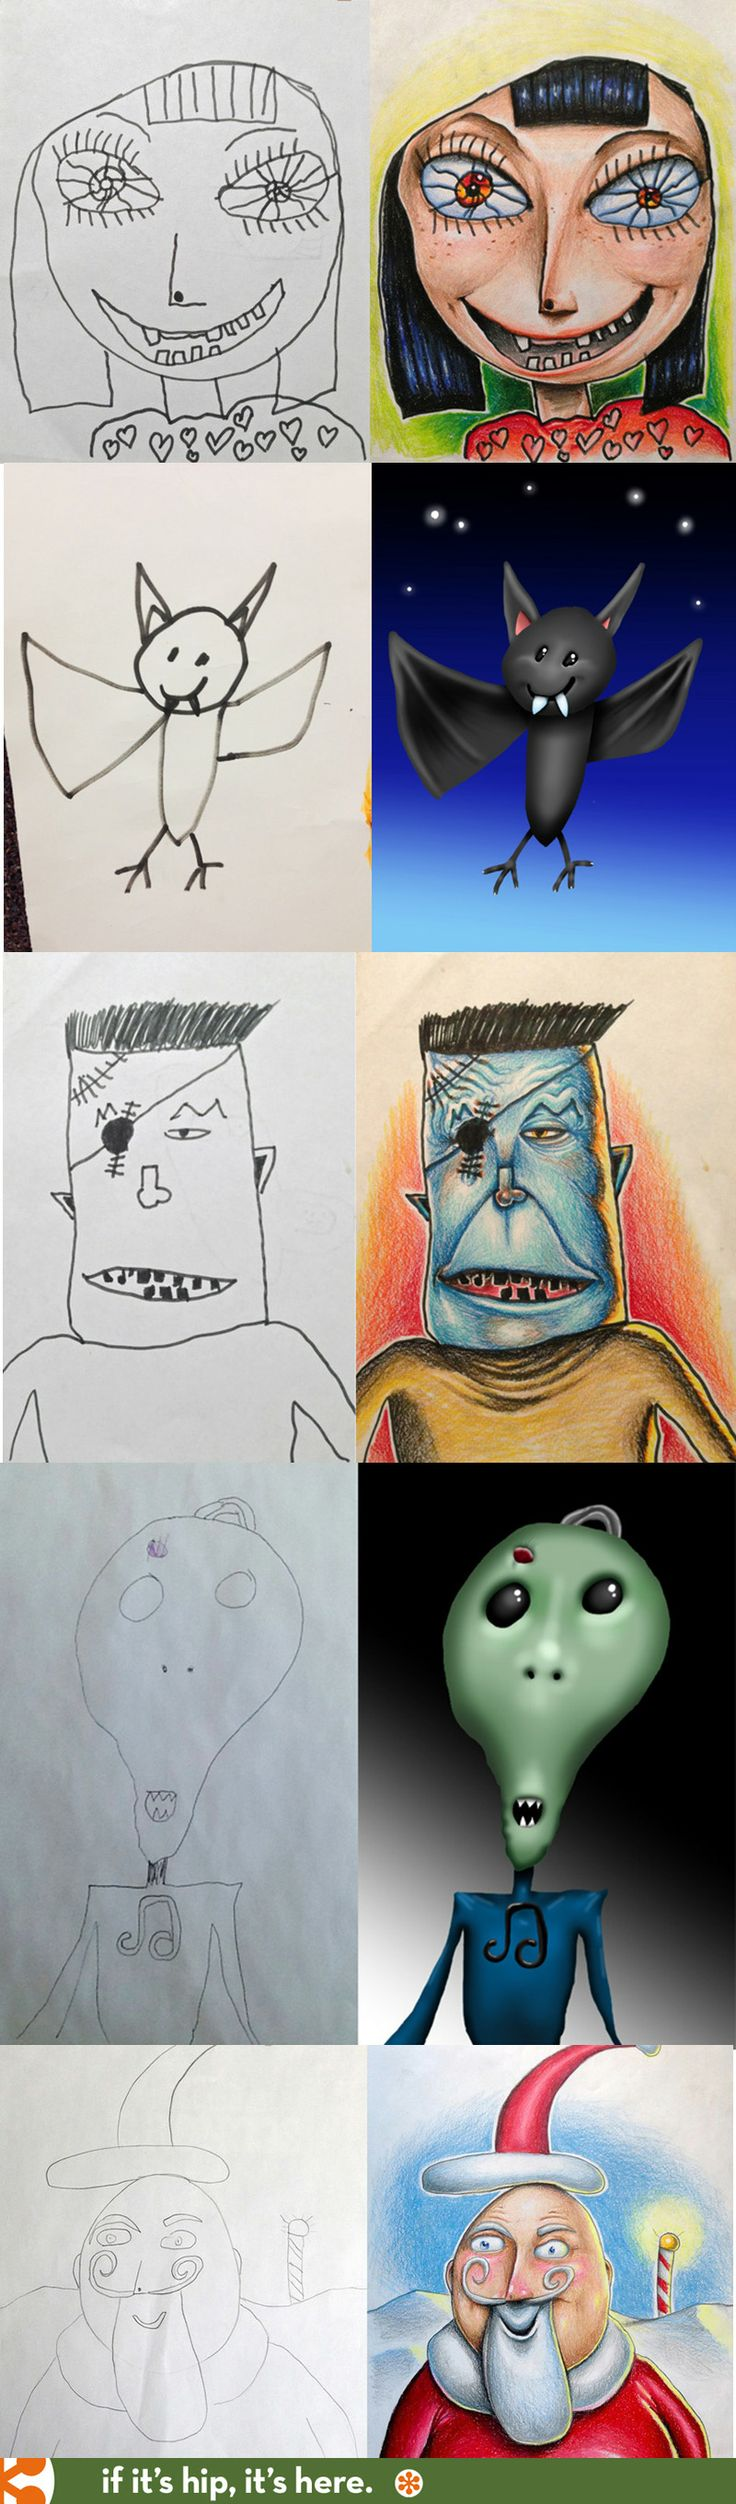 The dad who colors in his kids' drawings with colored pencils and an iPad.